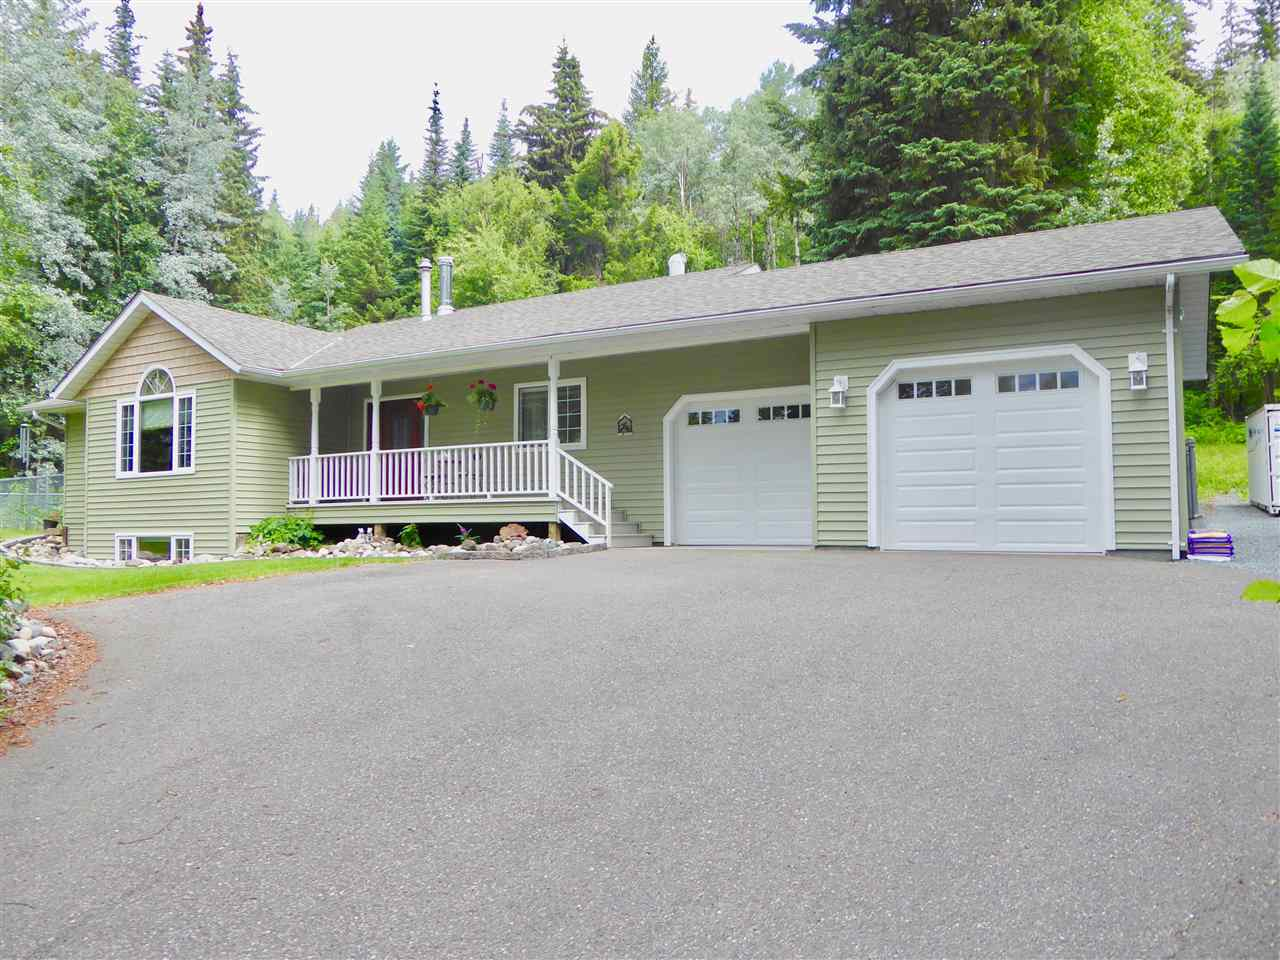 Main Photo: 8744 NORTH NECHAKO Road in Prince George: Nechako Bench House for sale (PG City North (Zone 73))  : MLS®# R2284813